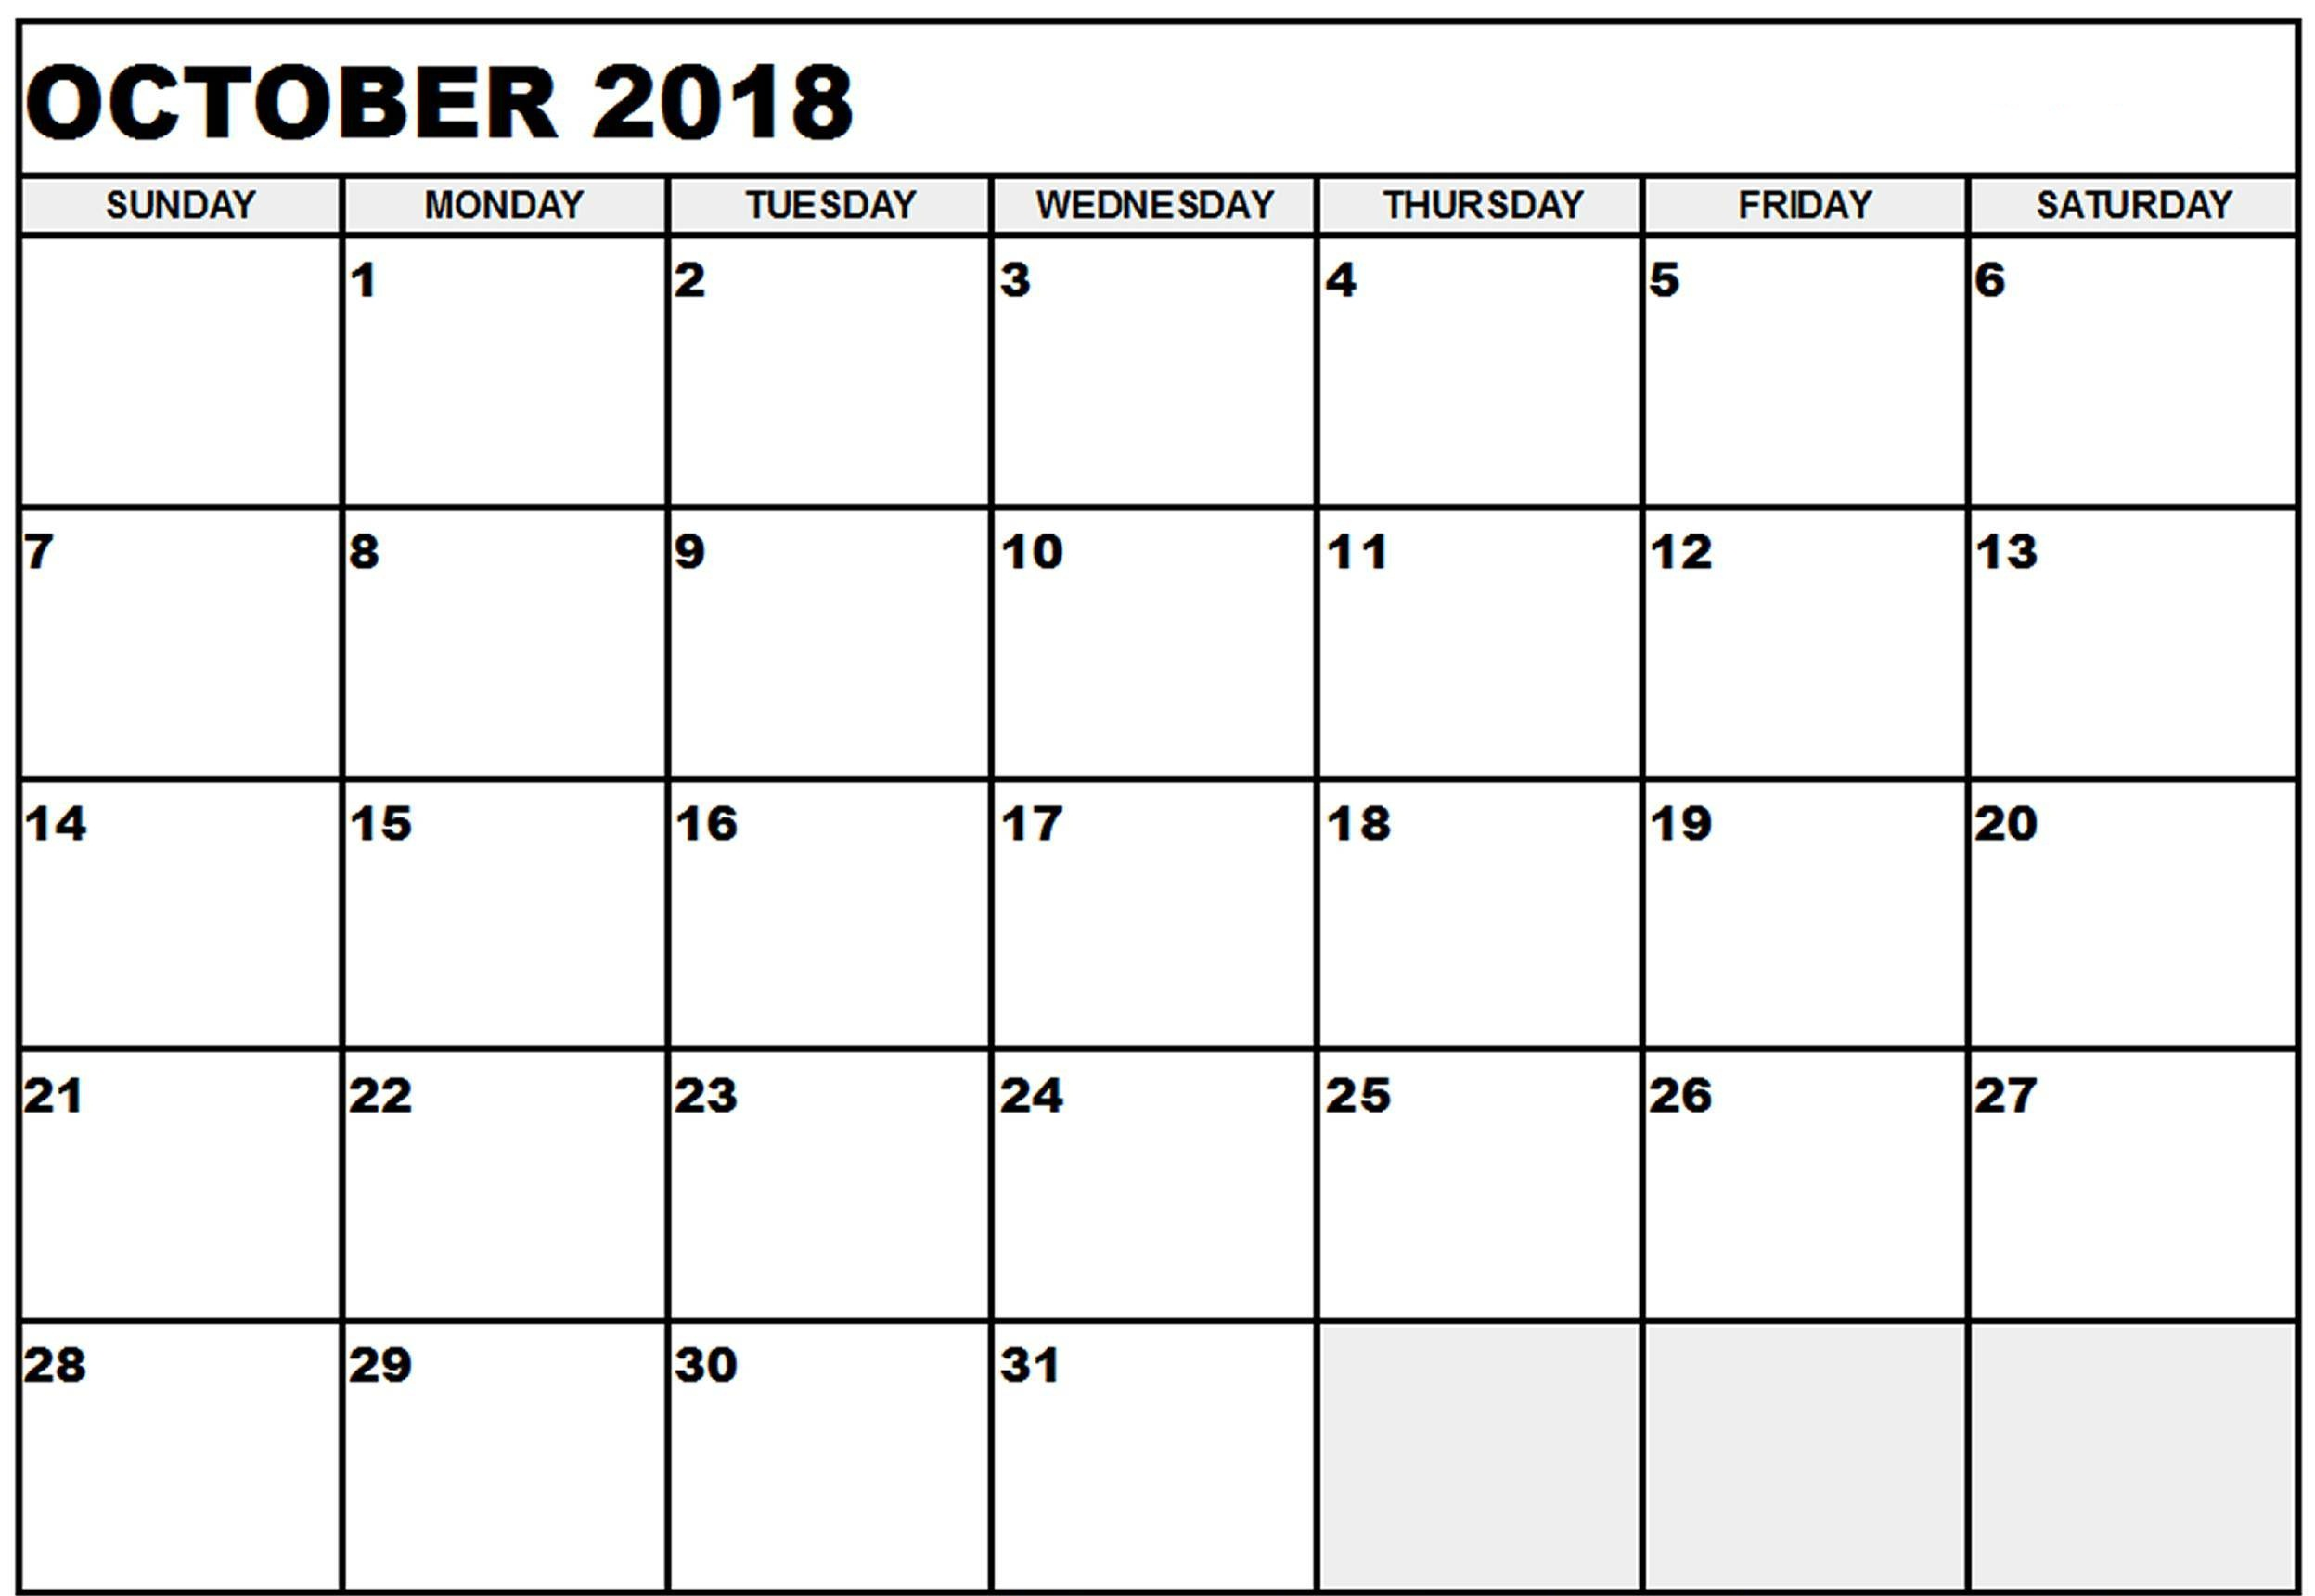 October 2018 Calendar Word Document